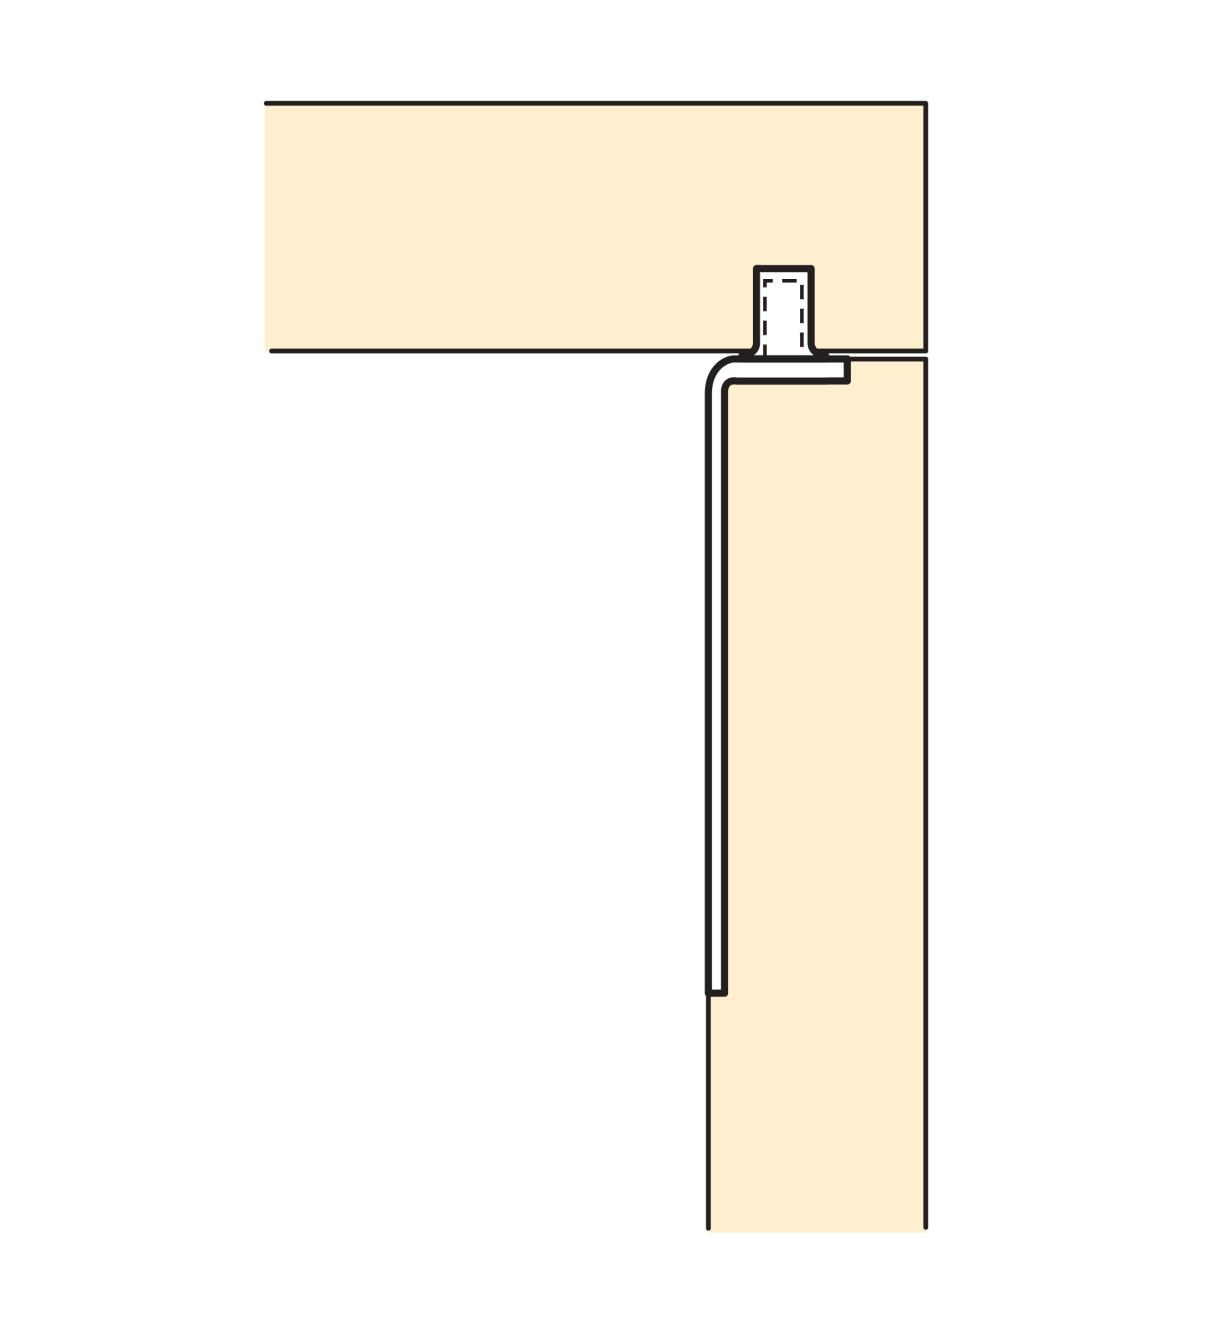 Illustration of door joined to cabinet with Rear Pivot Hinge